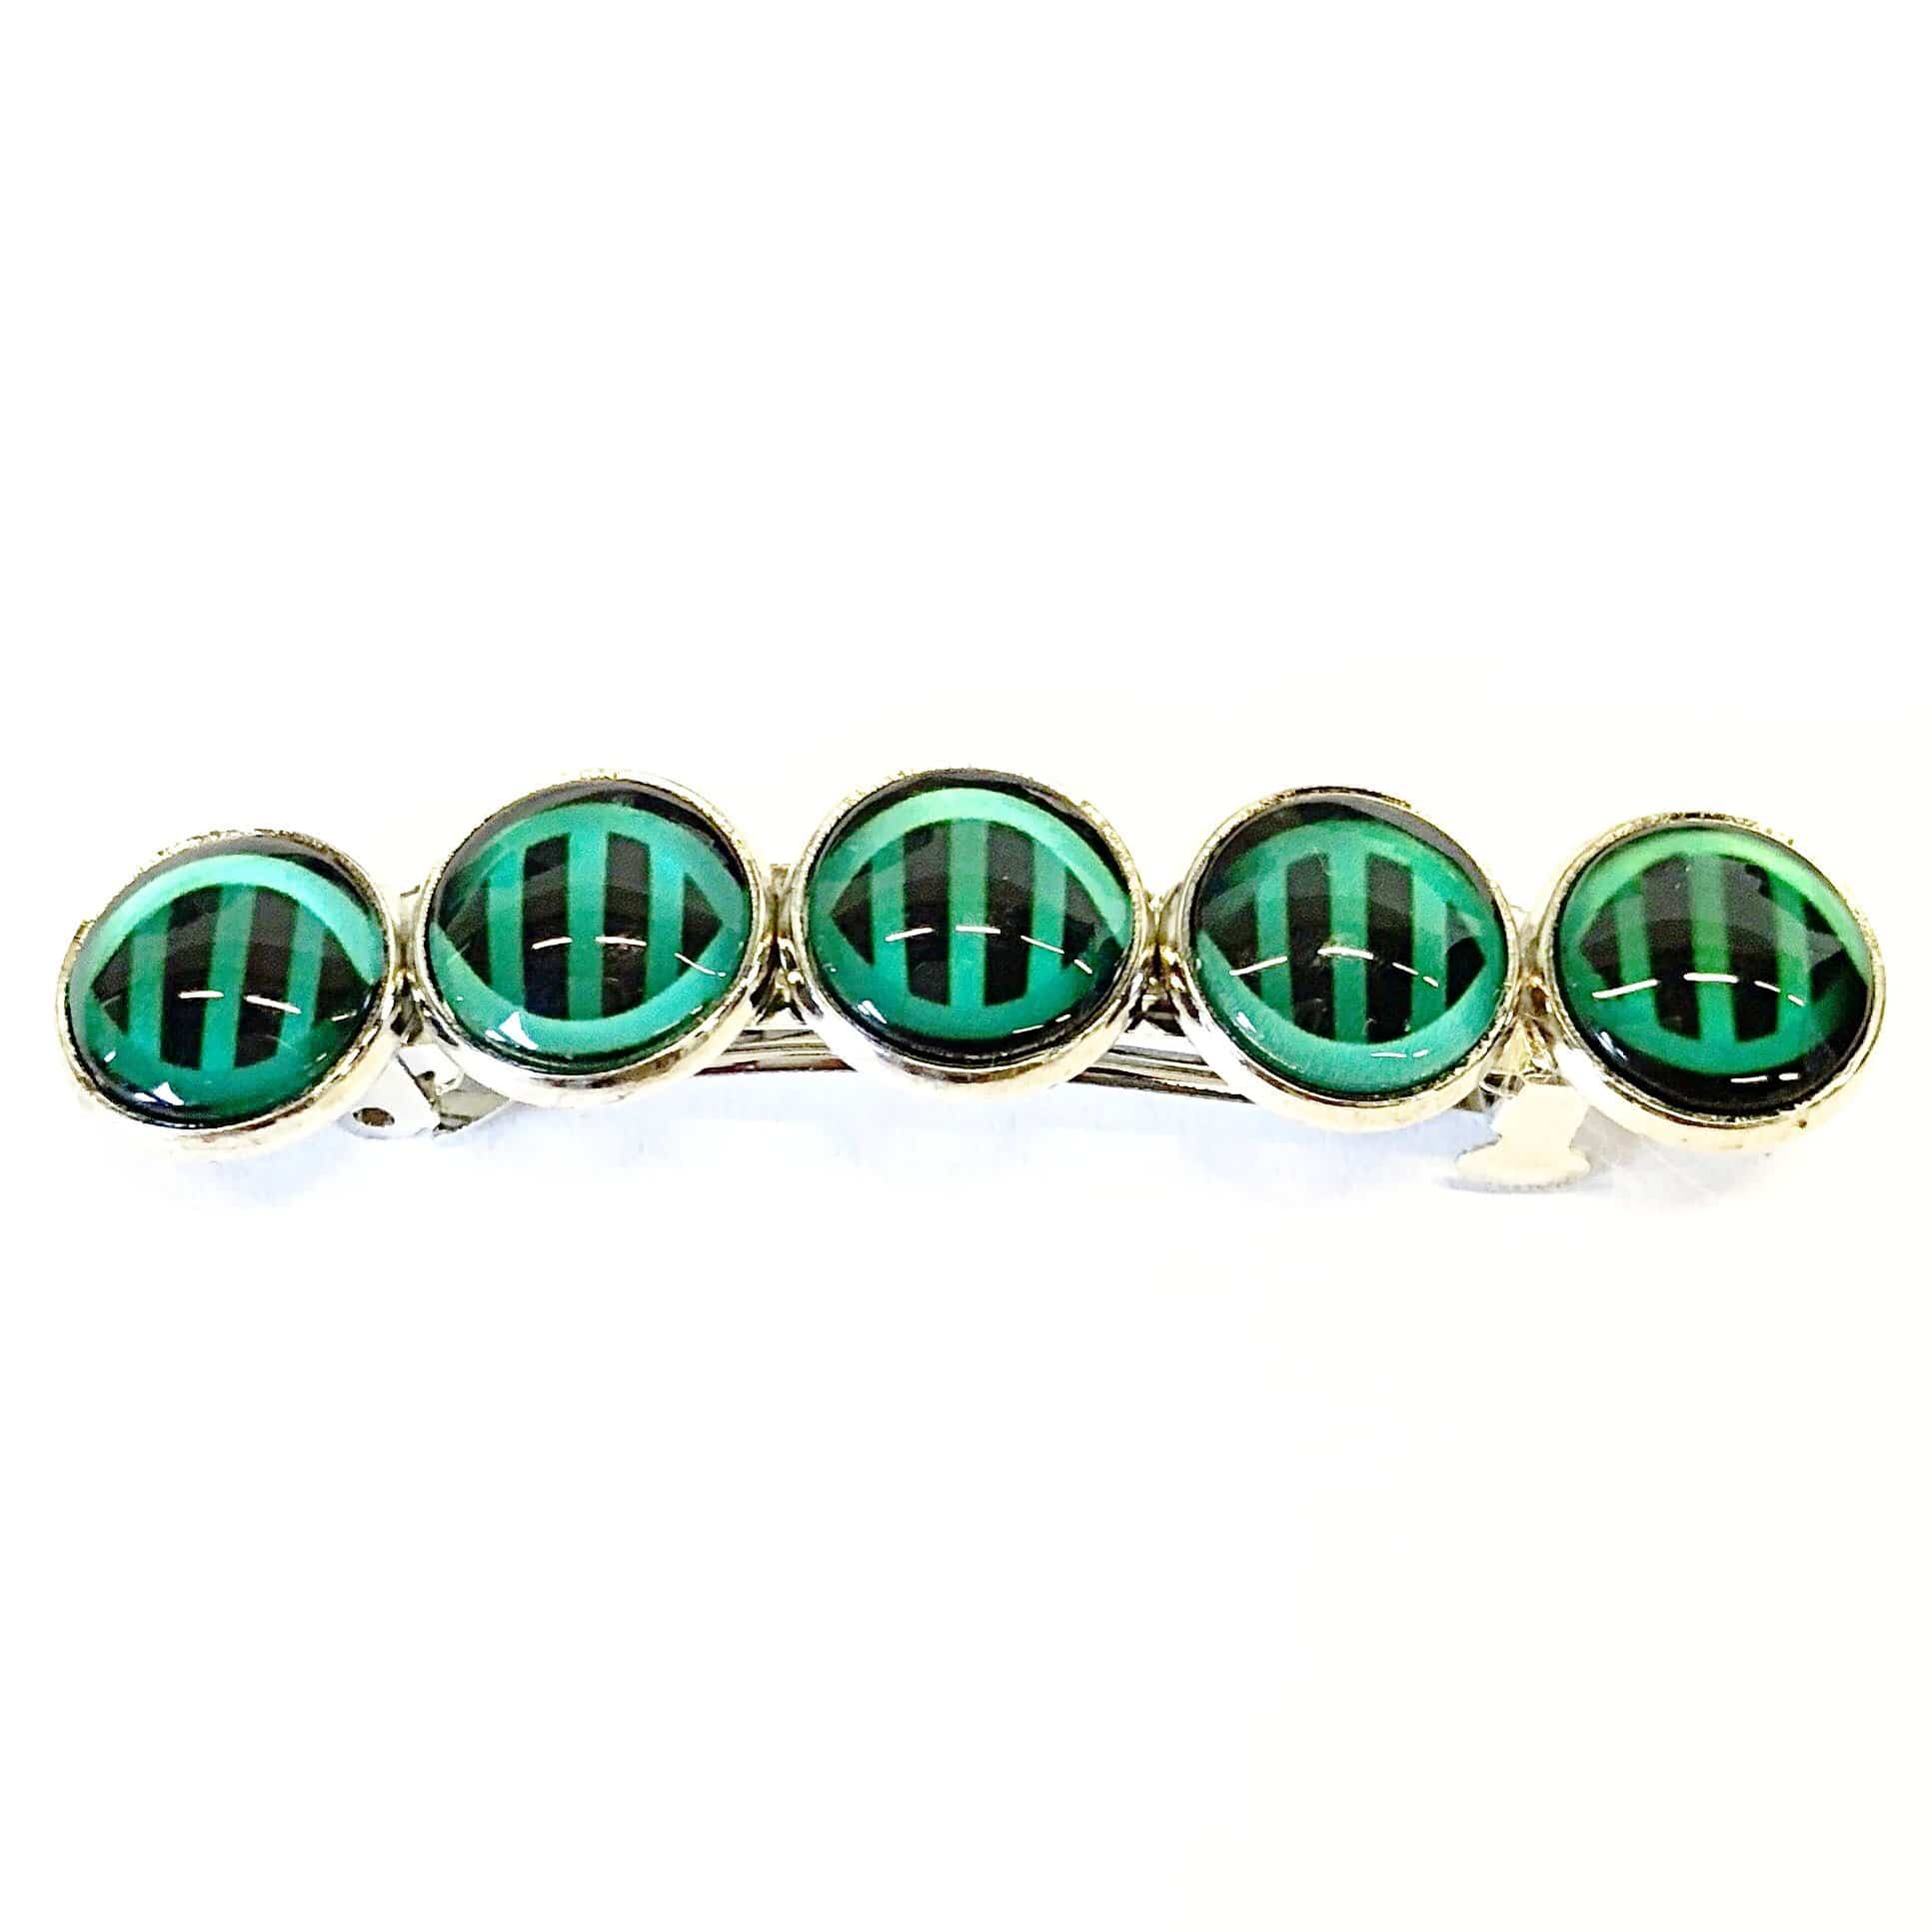 DNA Iconic Double Helix Stripes Barrette